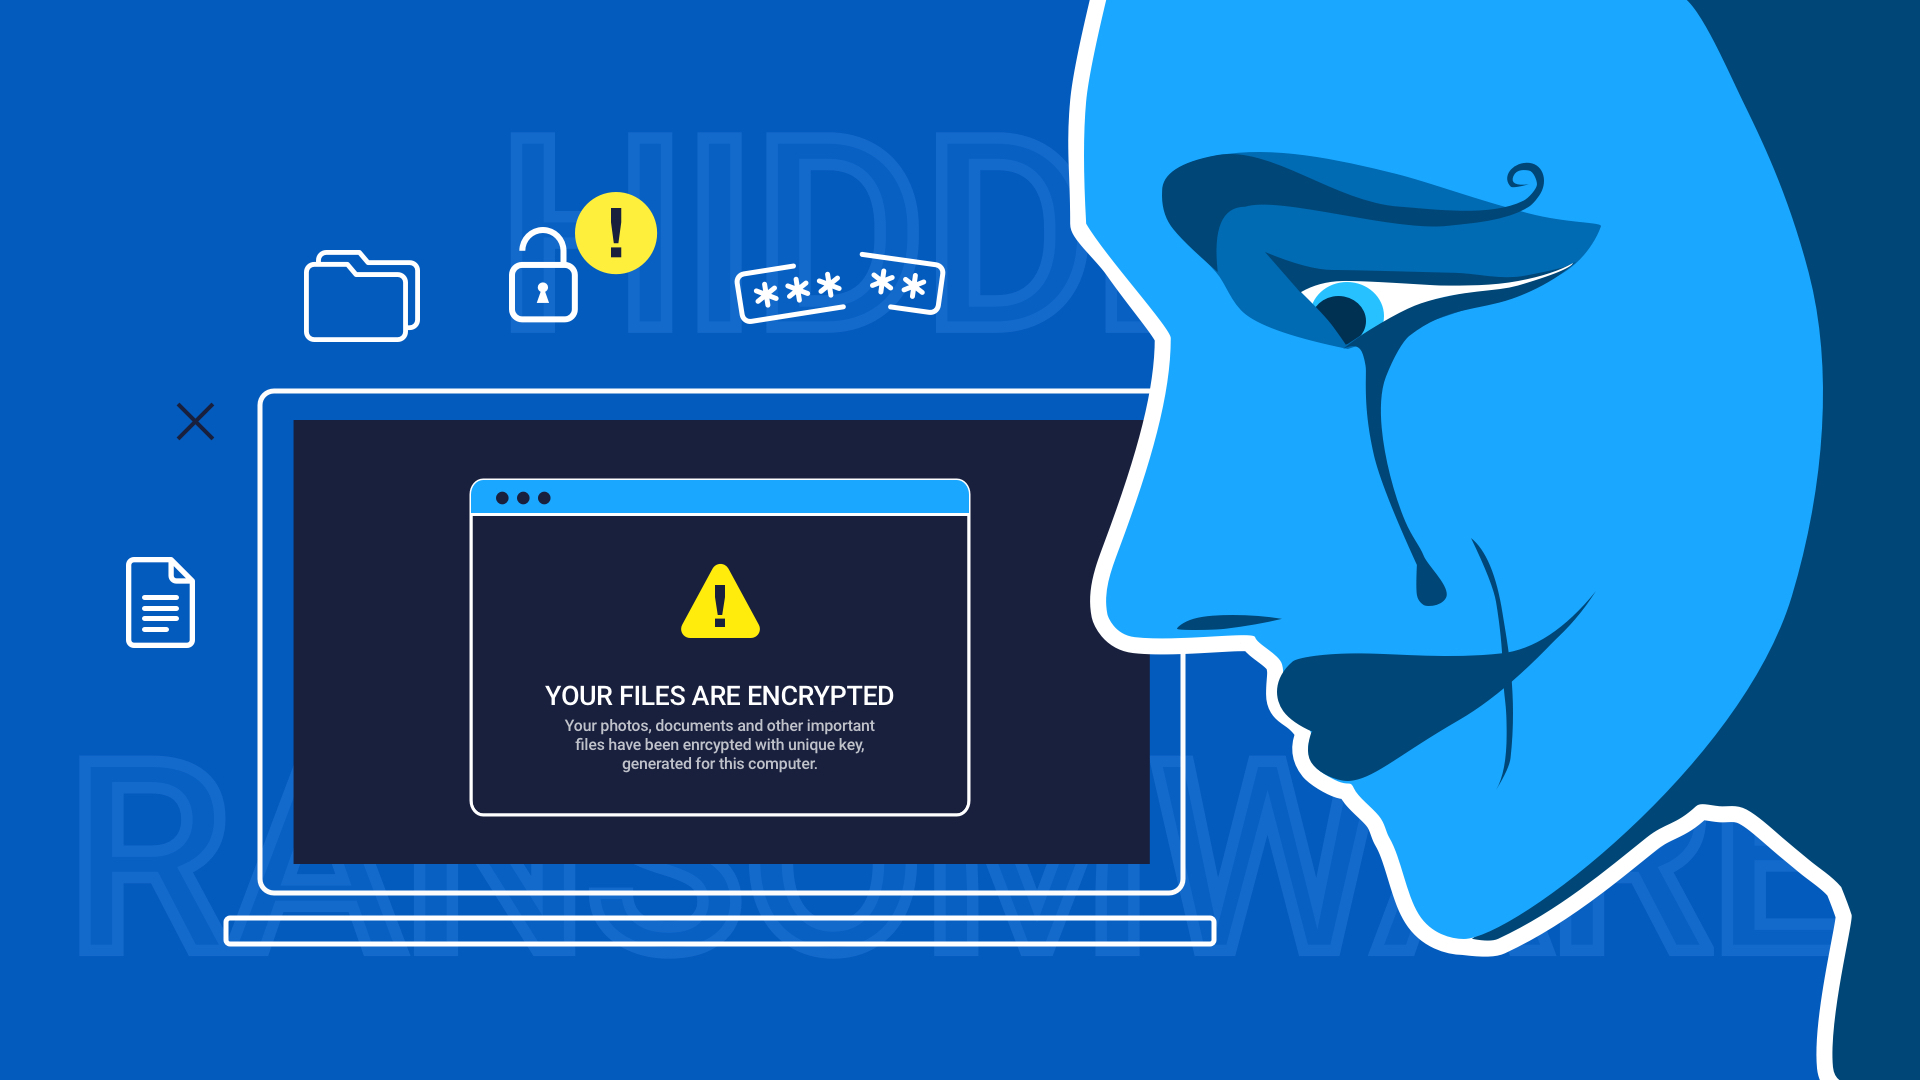 HiddenTear Ransomware - One More Old-Timer